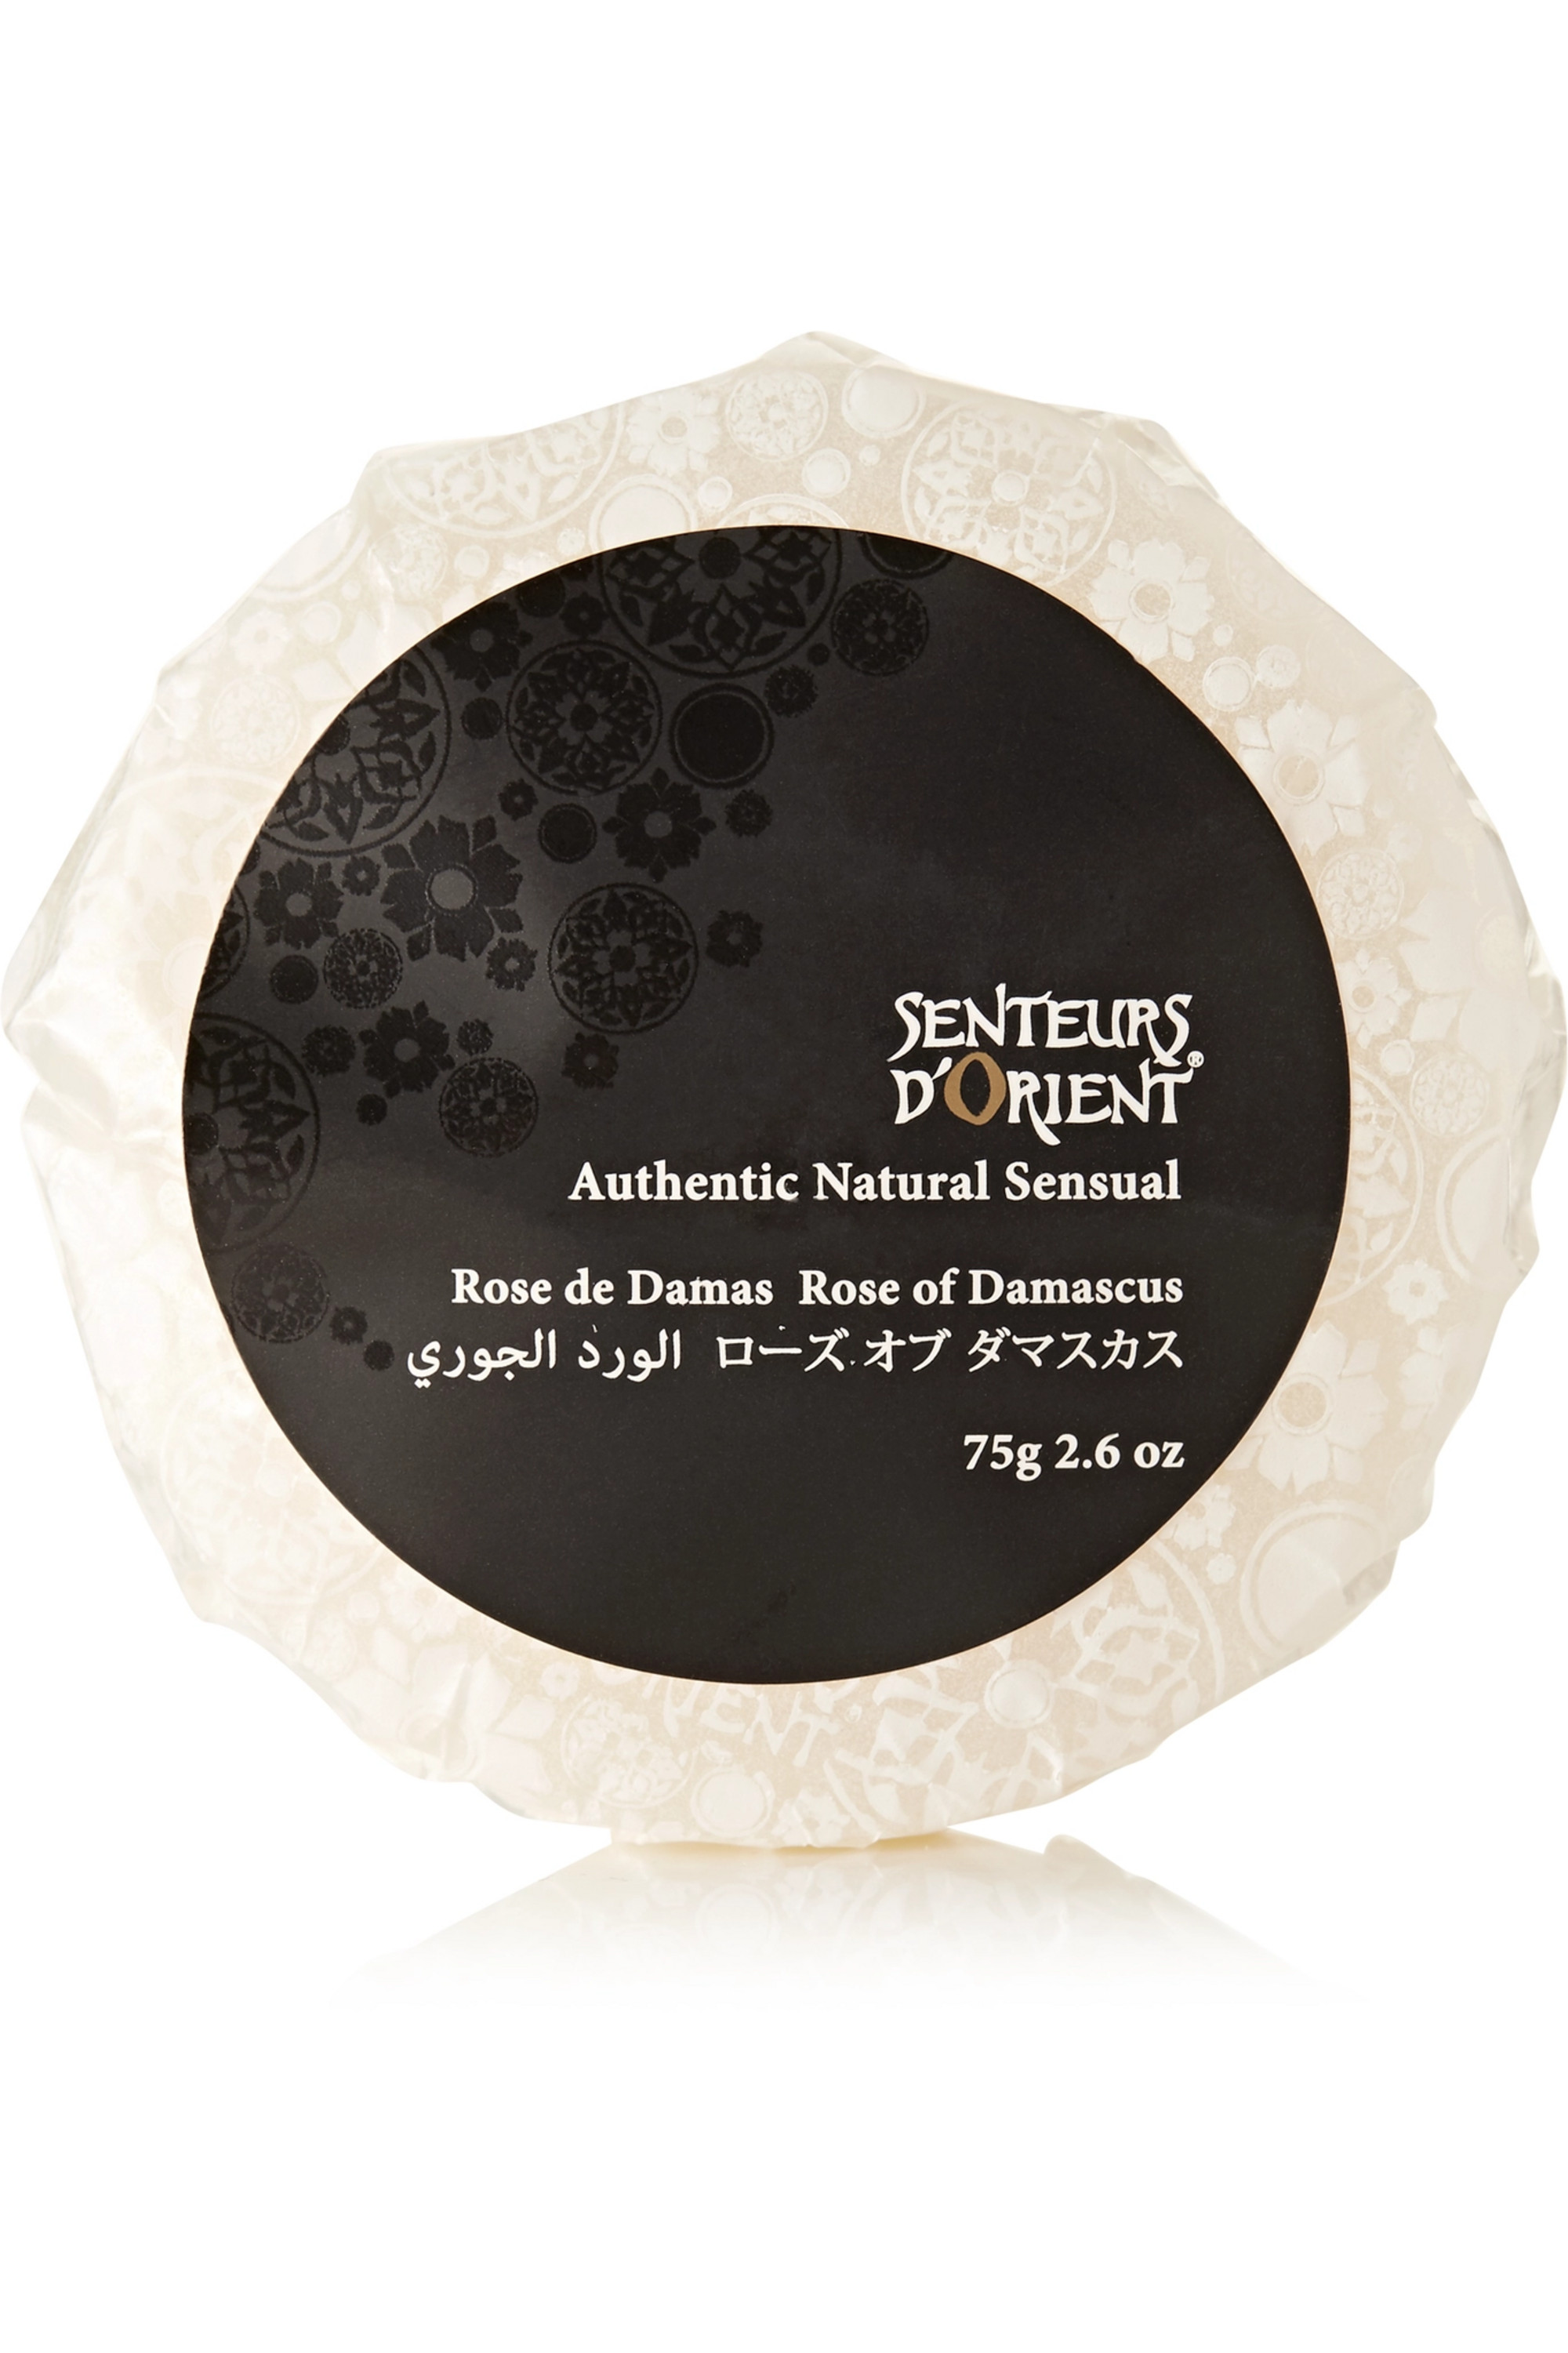 Senteurs d'Orient Rose of Damascus Ma'amoul Soap with Marble Dish, 305g